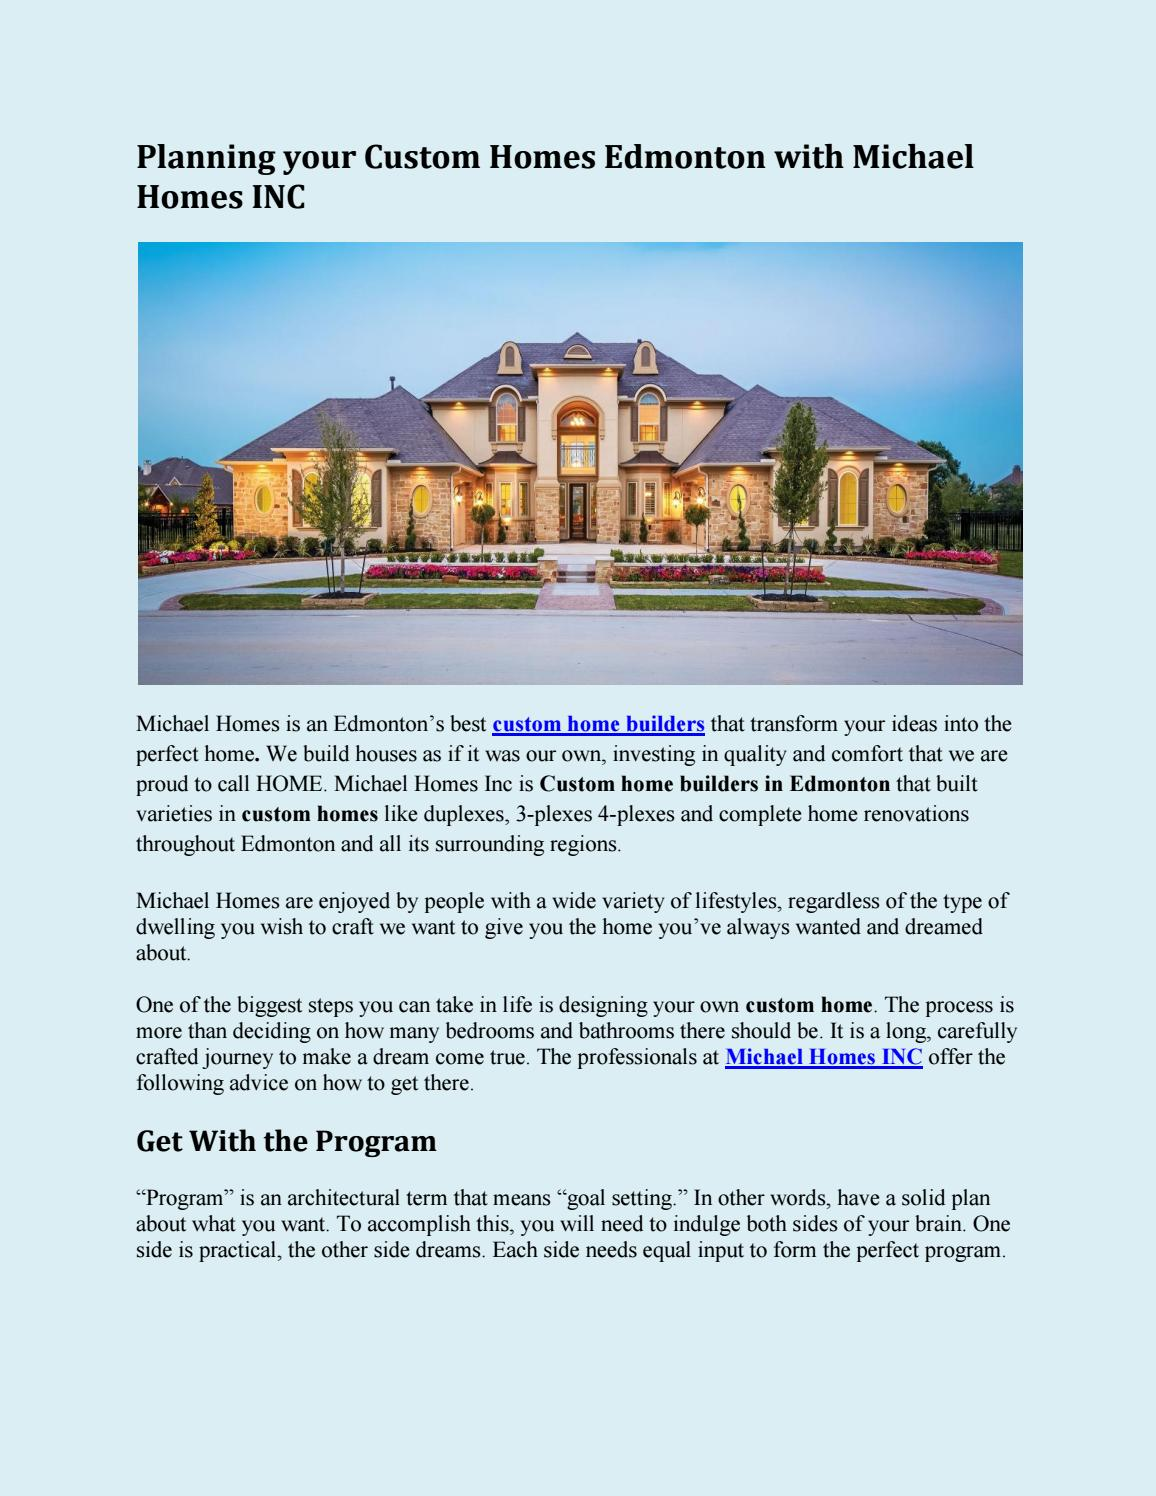 Planning Your Custom Homes Edmonton With Michael Homes Inc By